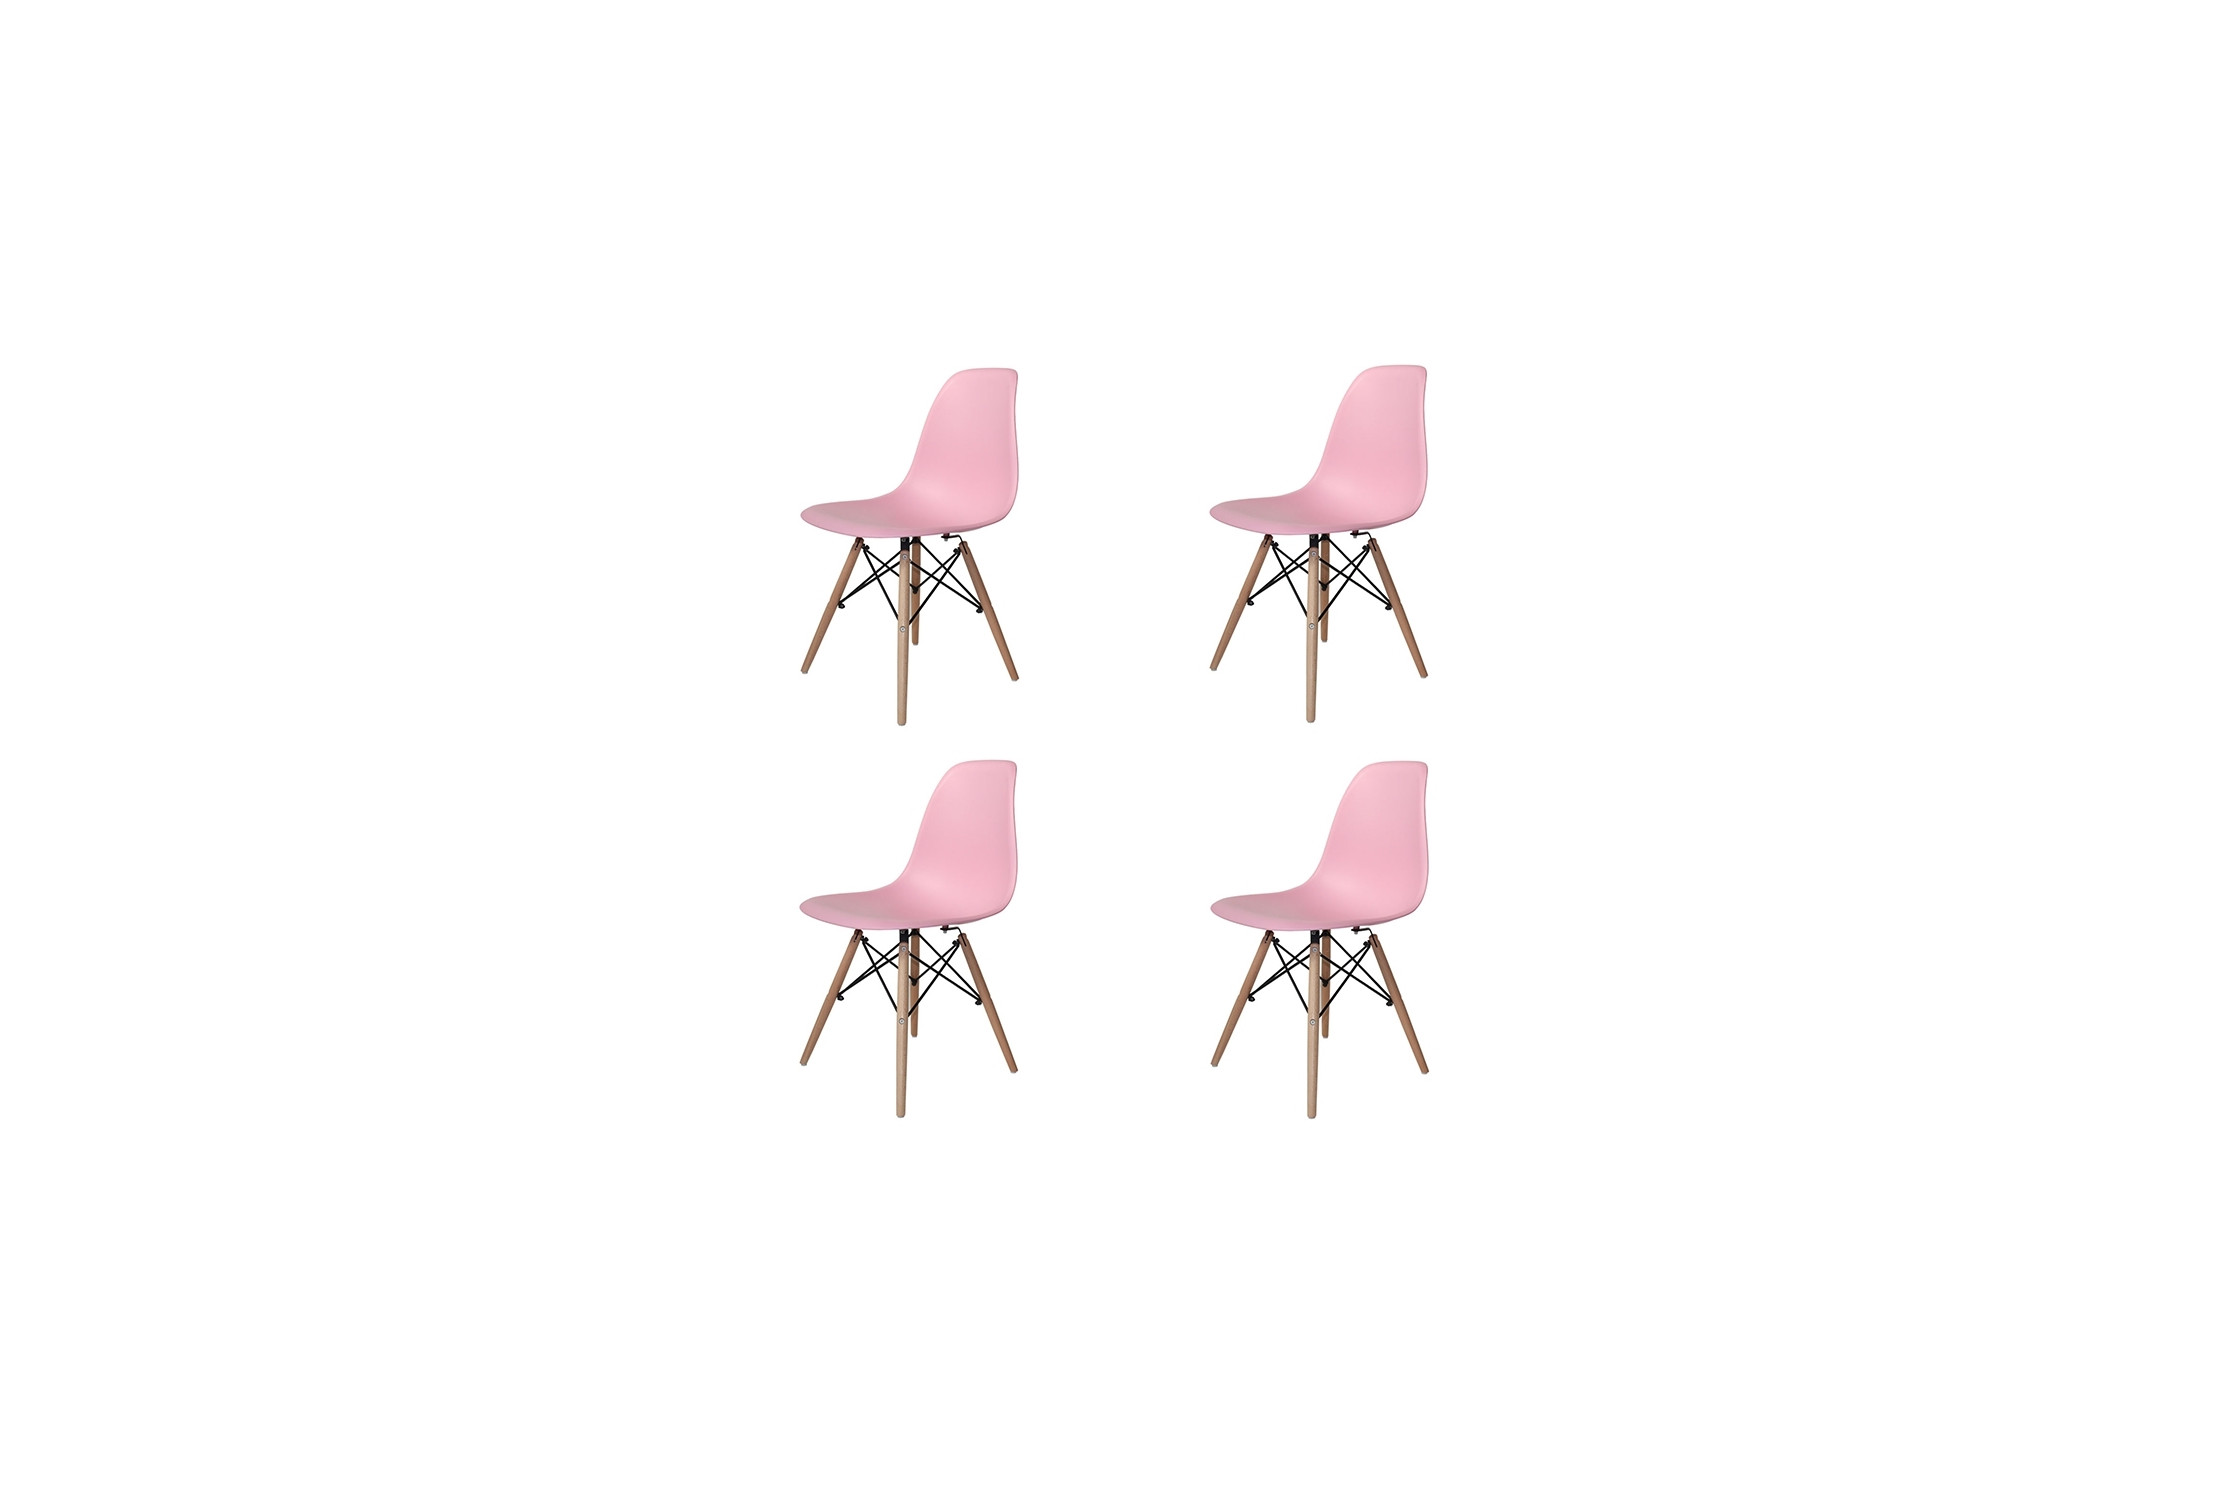 PACK 4 SILLAS TOWER WOOD ROSAS EXTRA QUALITY